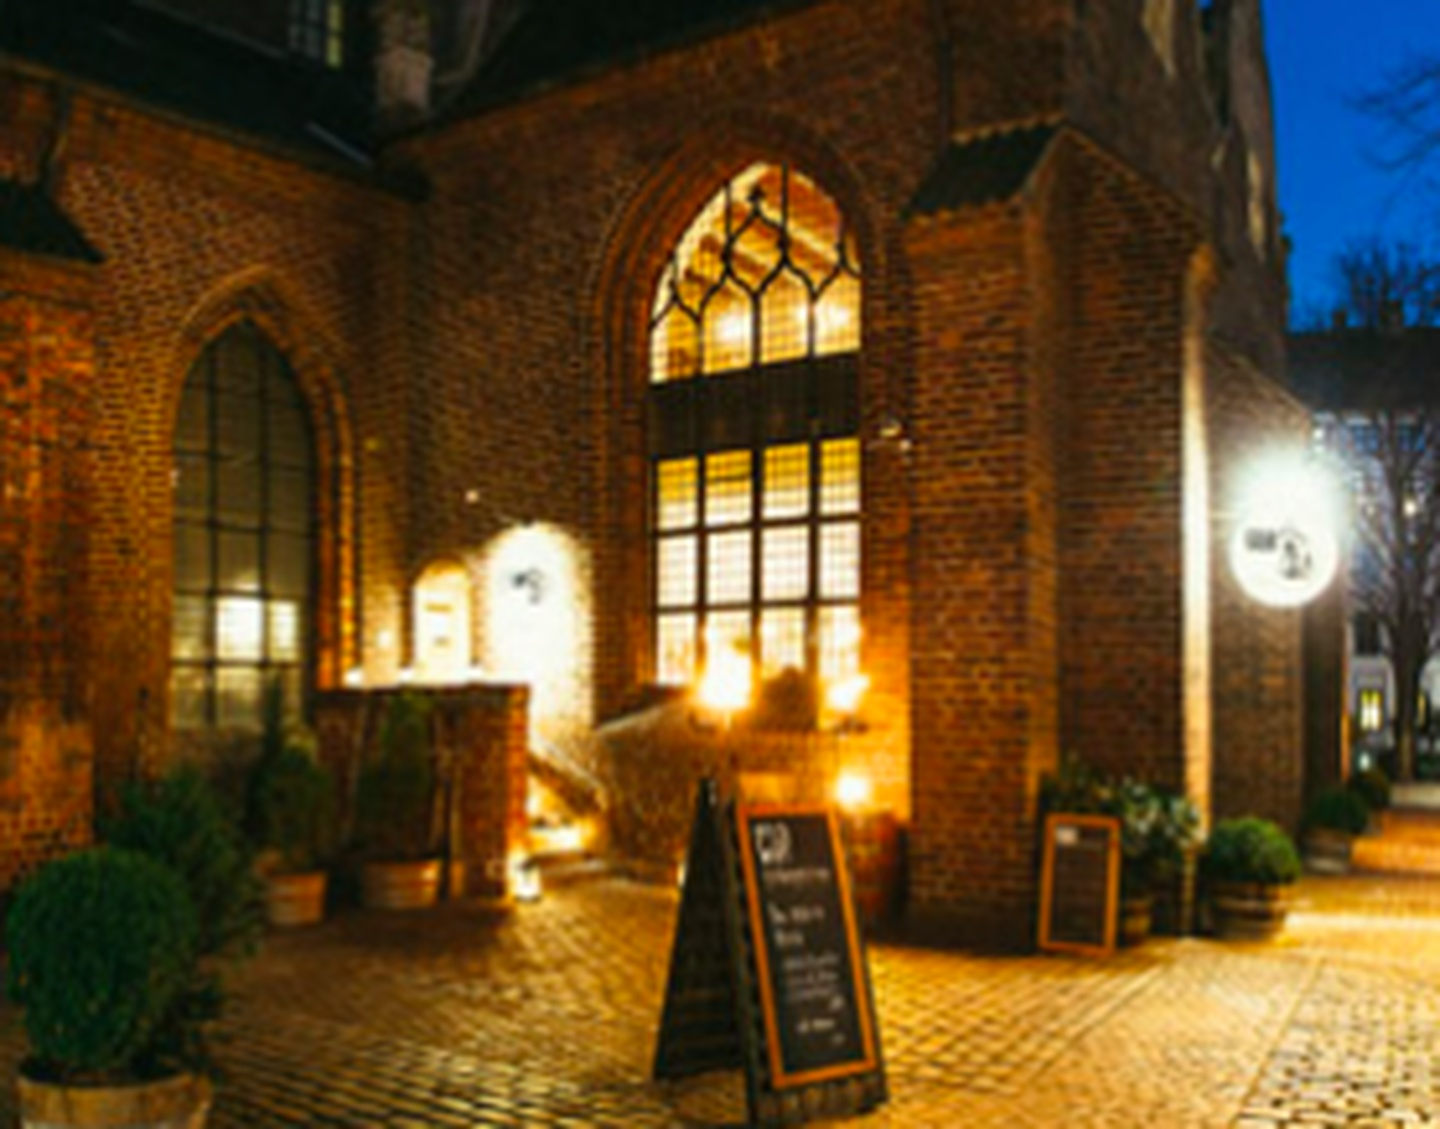 Copenhagen corporate event venues Restaurant Restaurant Maven - Restaurant and Wine Bar image 11